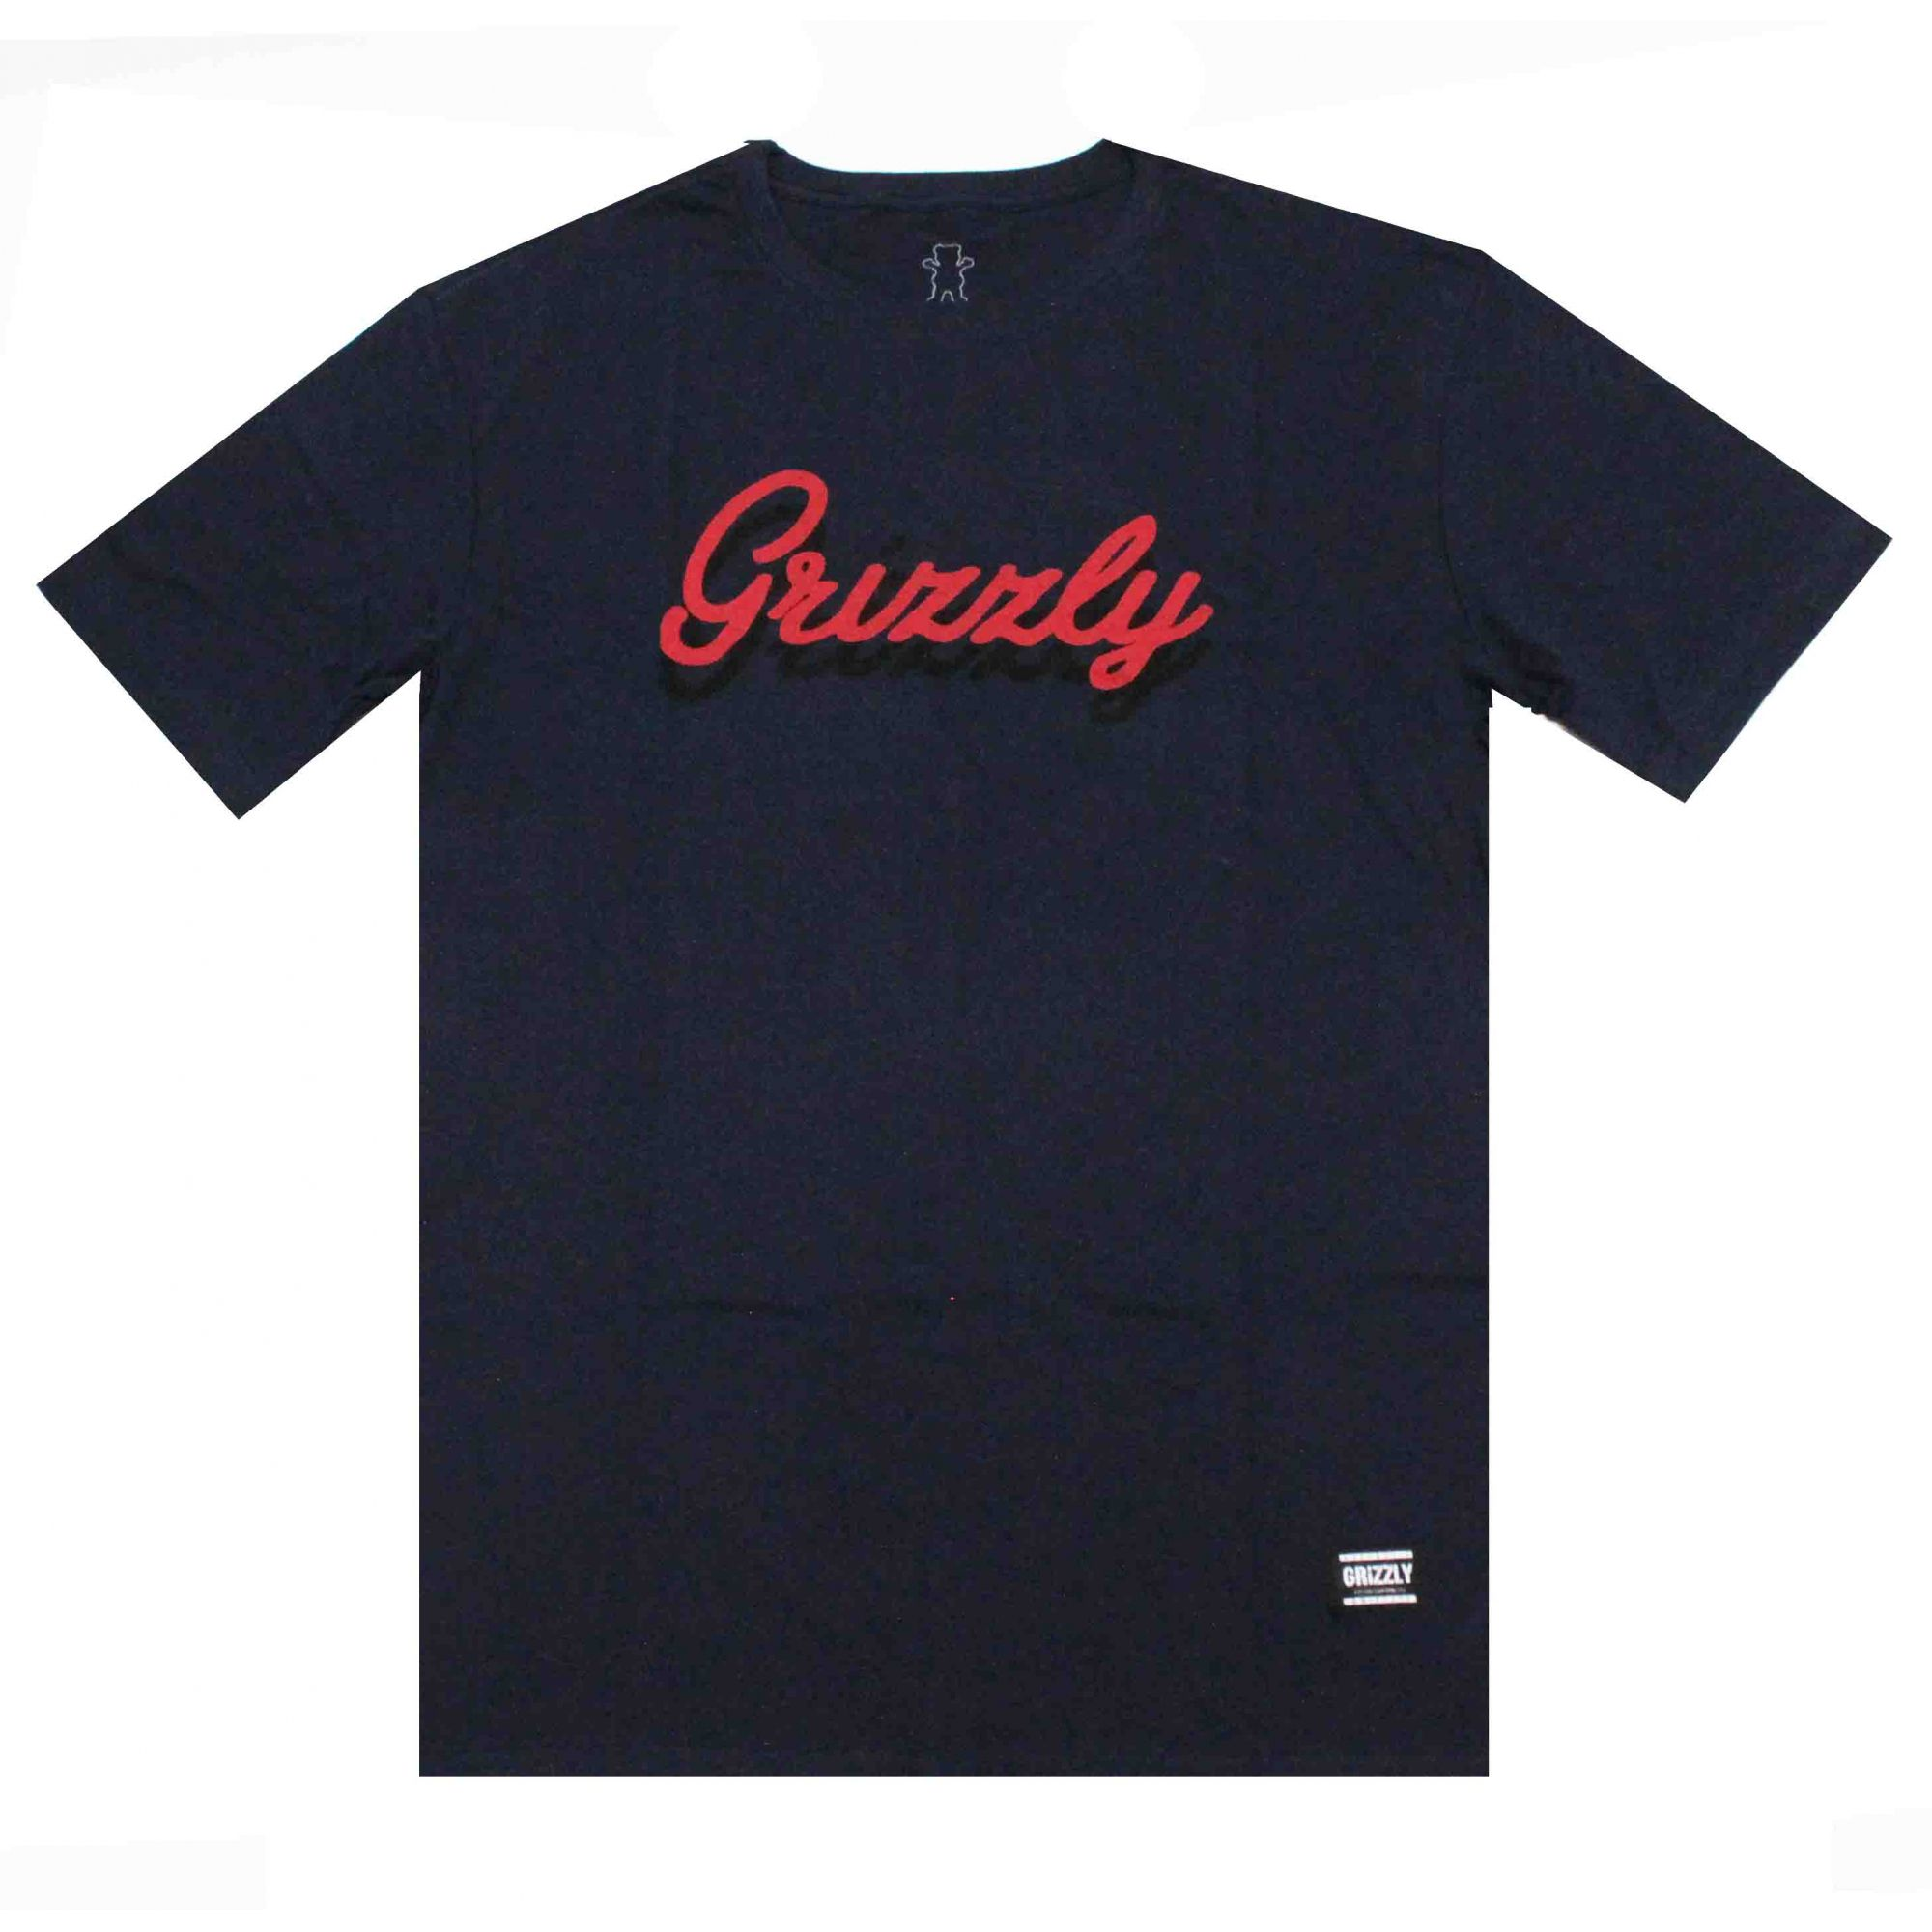 Camiseta Grizzly Cursive Blue Navy